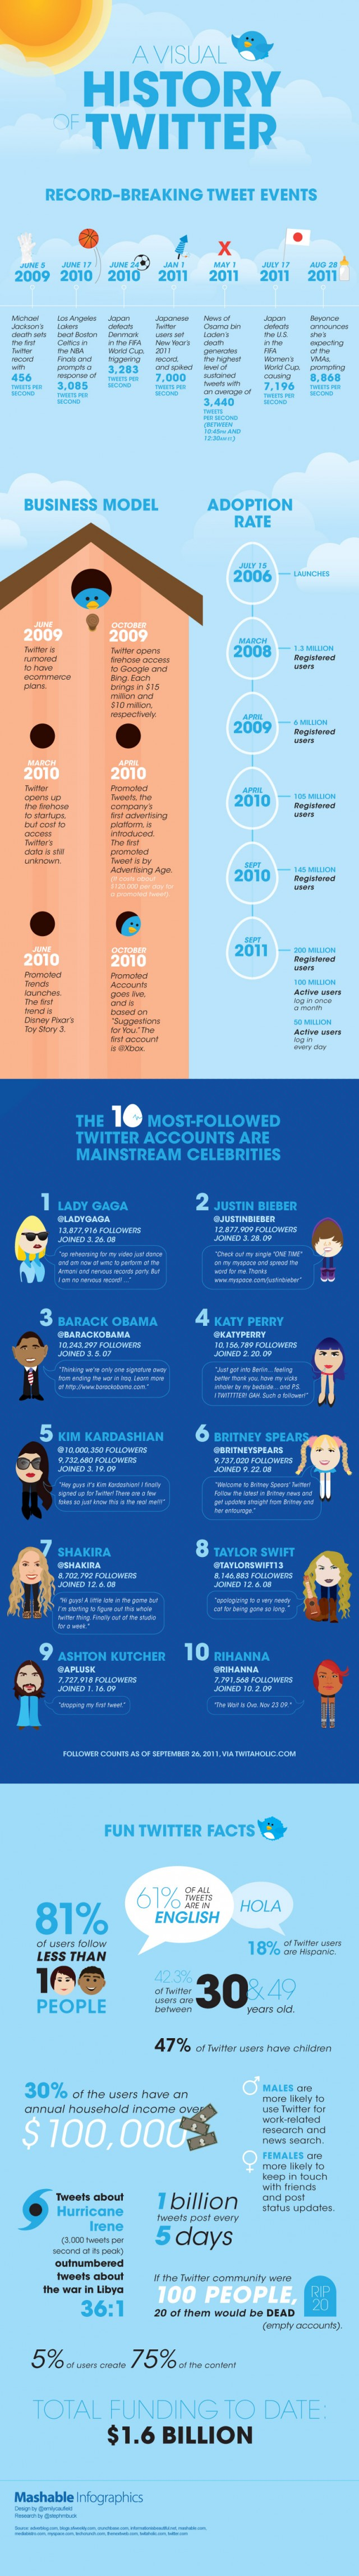 mashable_infographic-graphics-twitter